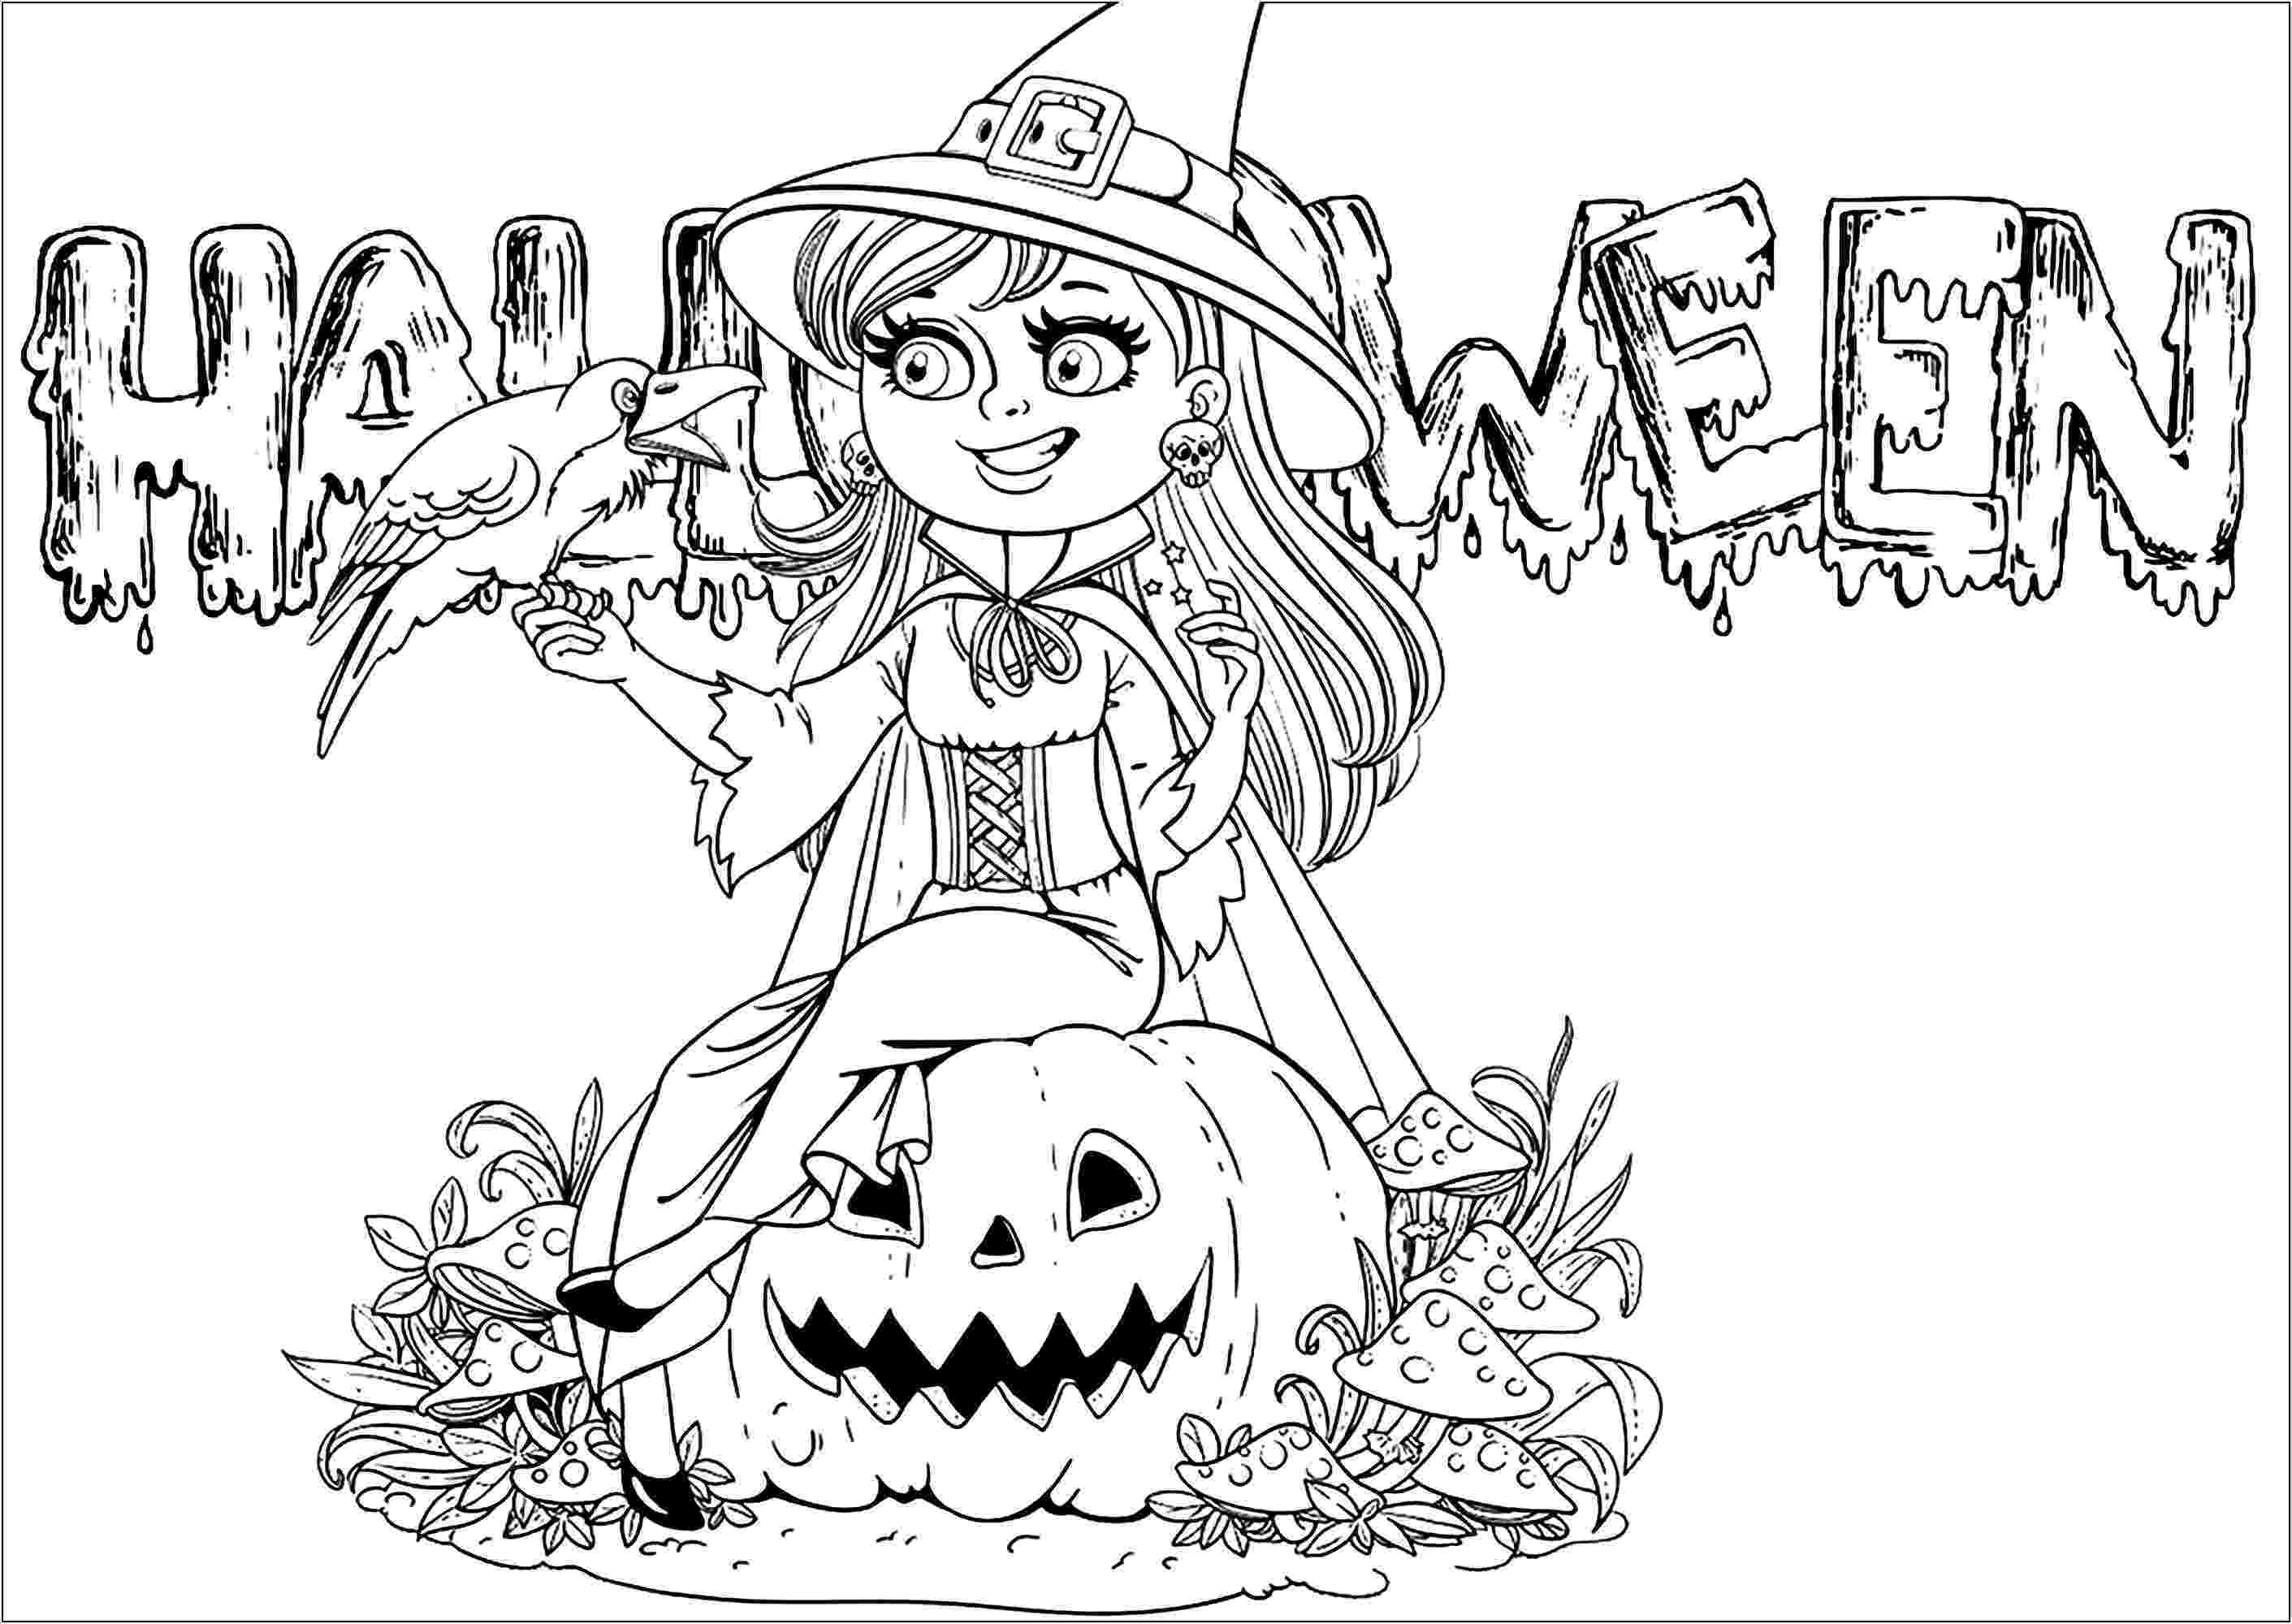 coloring pages for adults halloween halloween simple pumkin drawing halloween adult coloring adults coloring pages for halloween